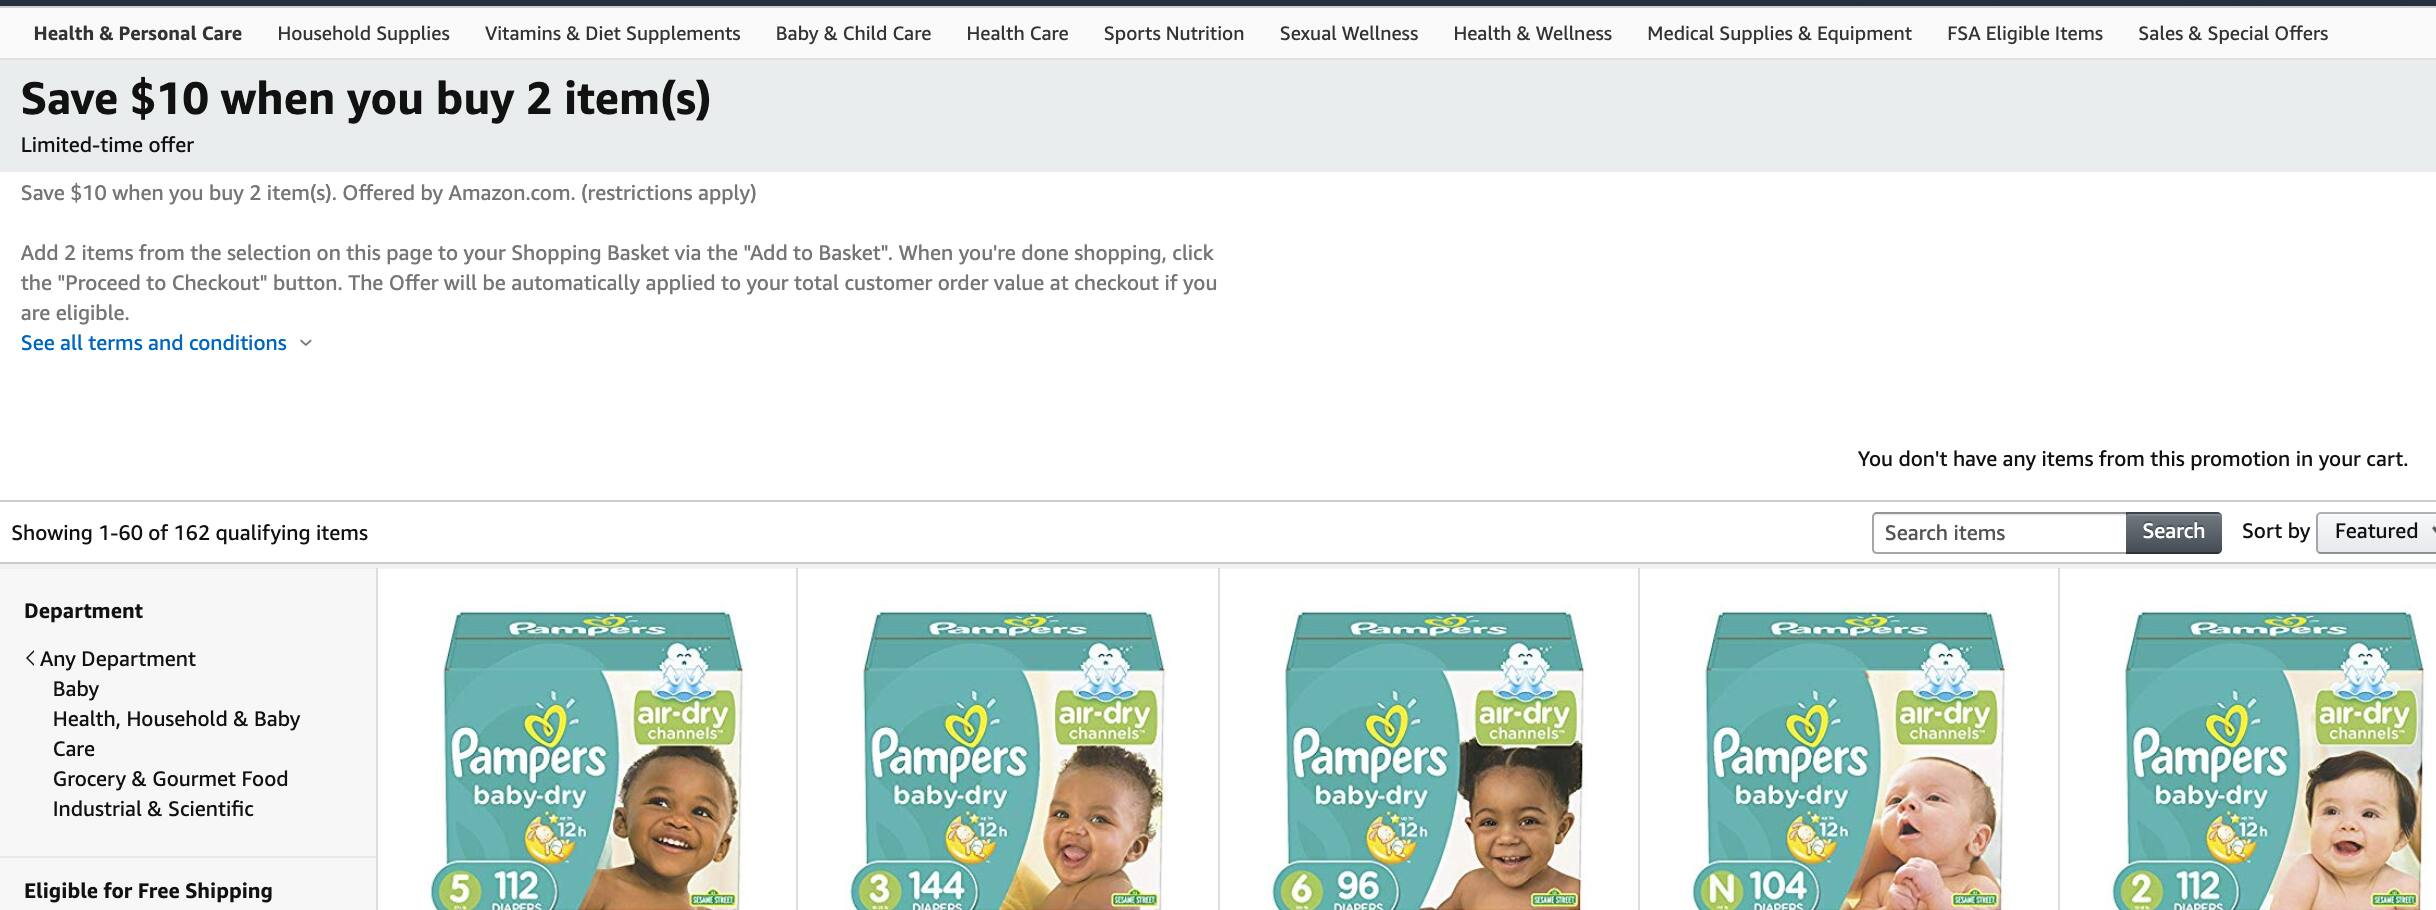 diapers / pull-ups Save $10 when you buy 2 item(s) and additional 20% discount with Prime